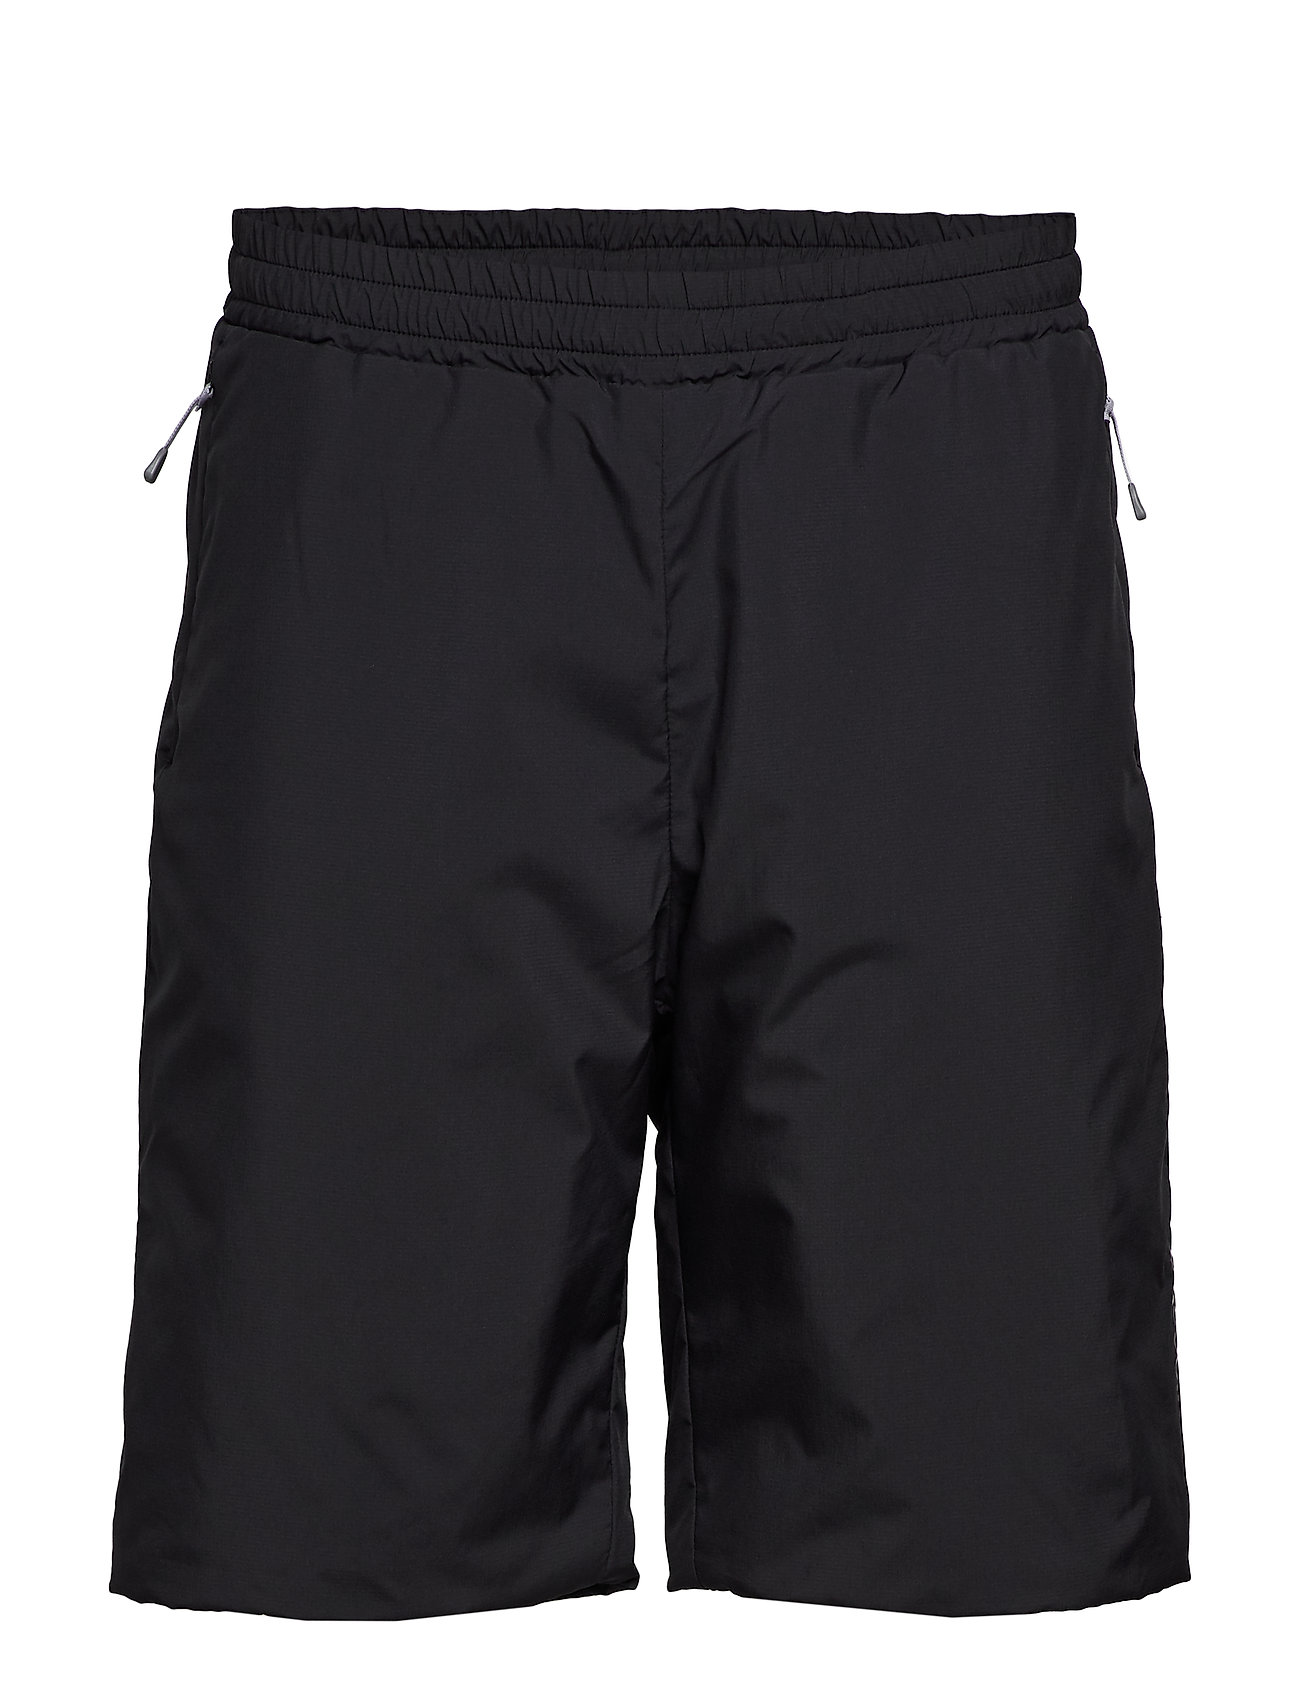 Houdini All Weather Shorts - TRUE BLACK